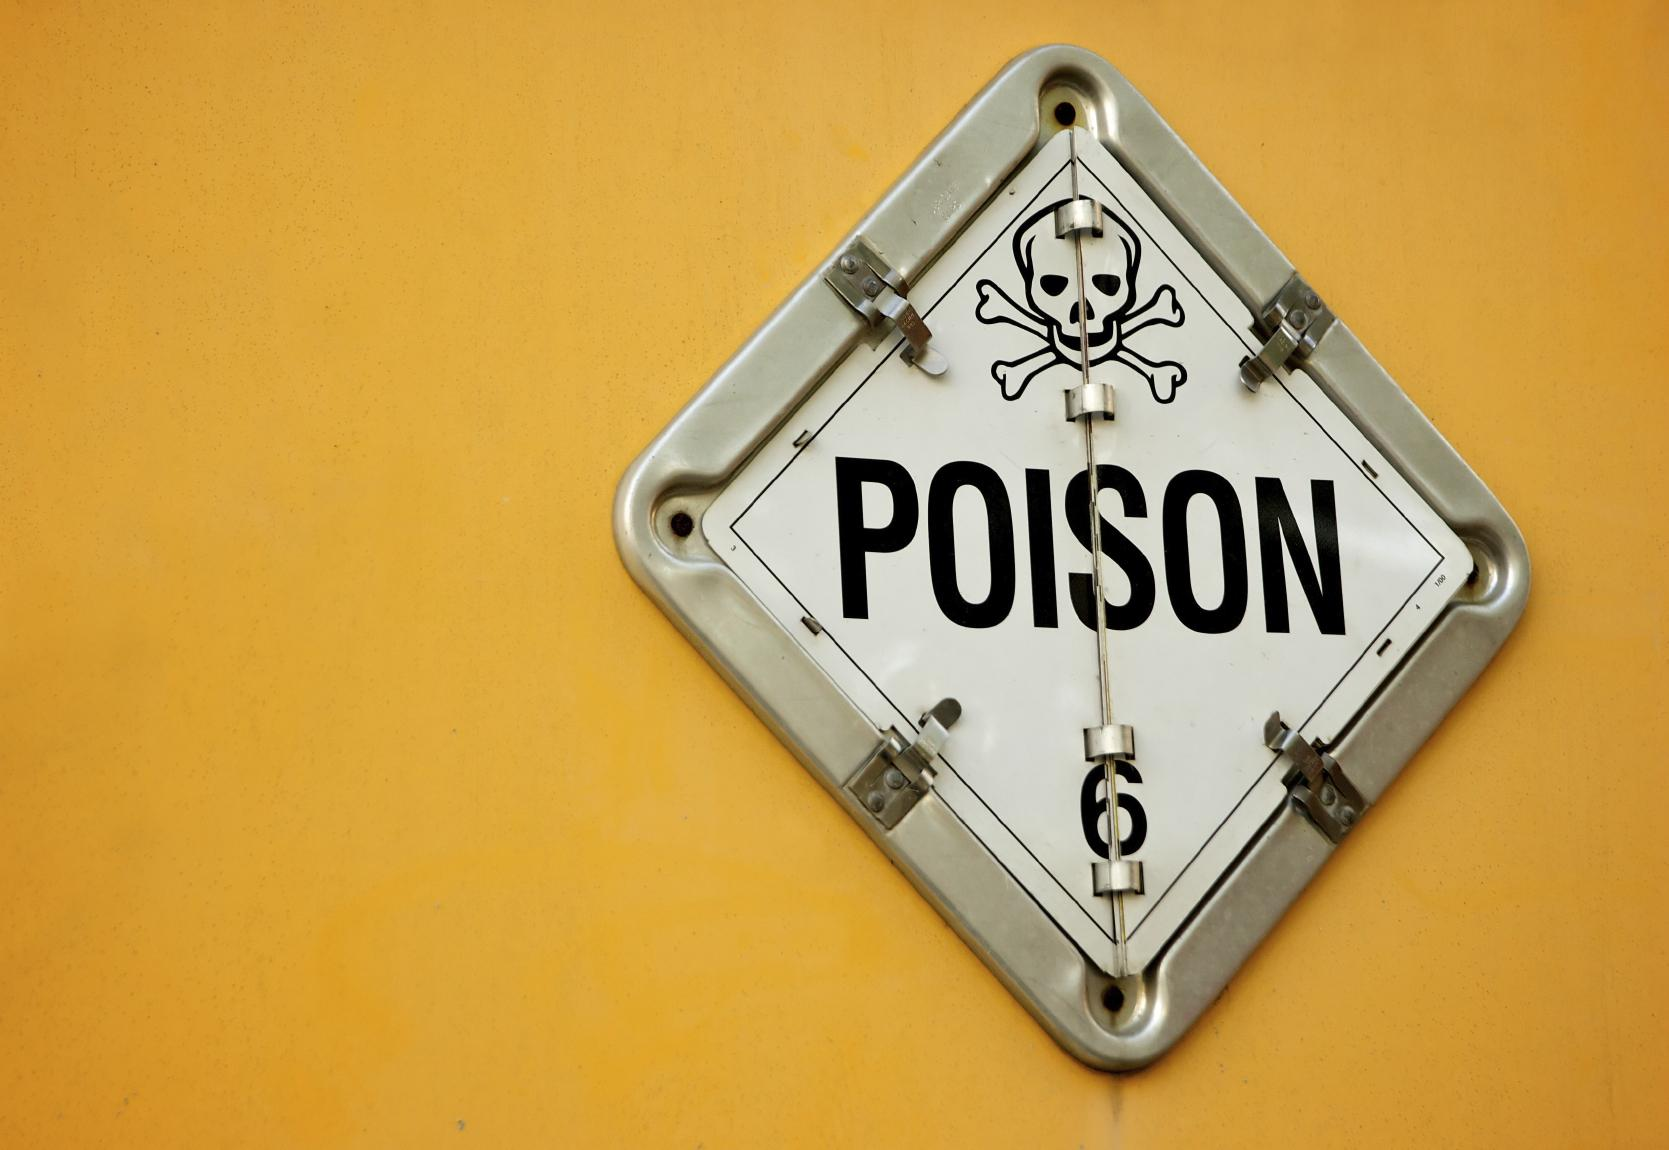 New study reveals why workplaces become toxic